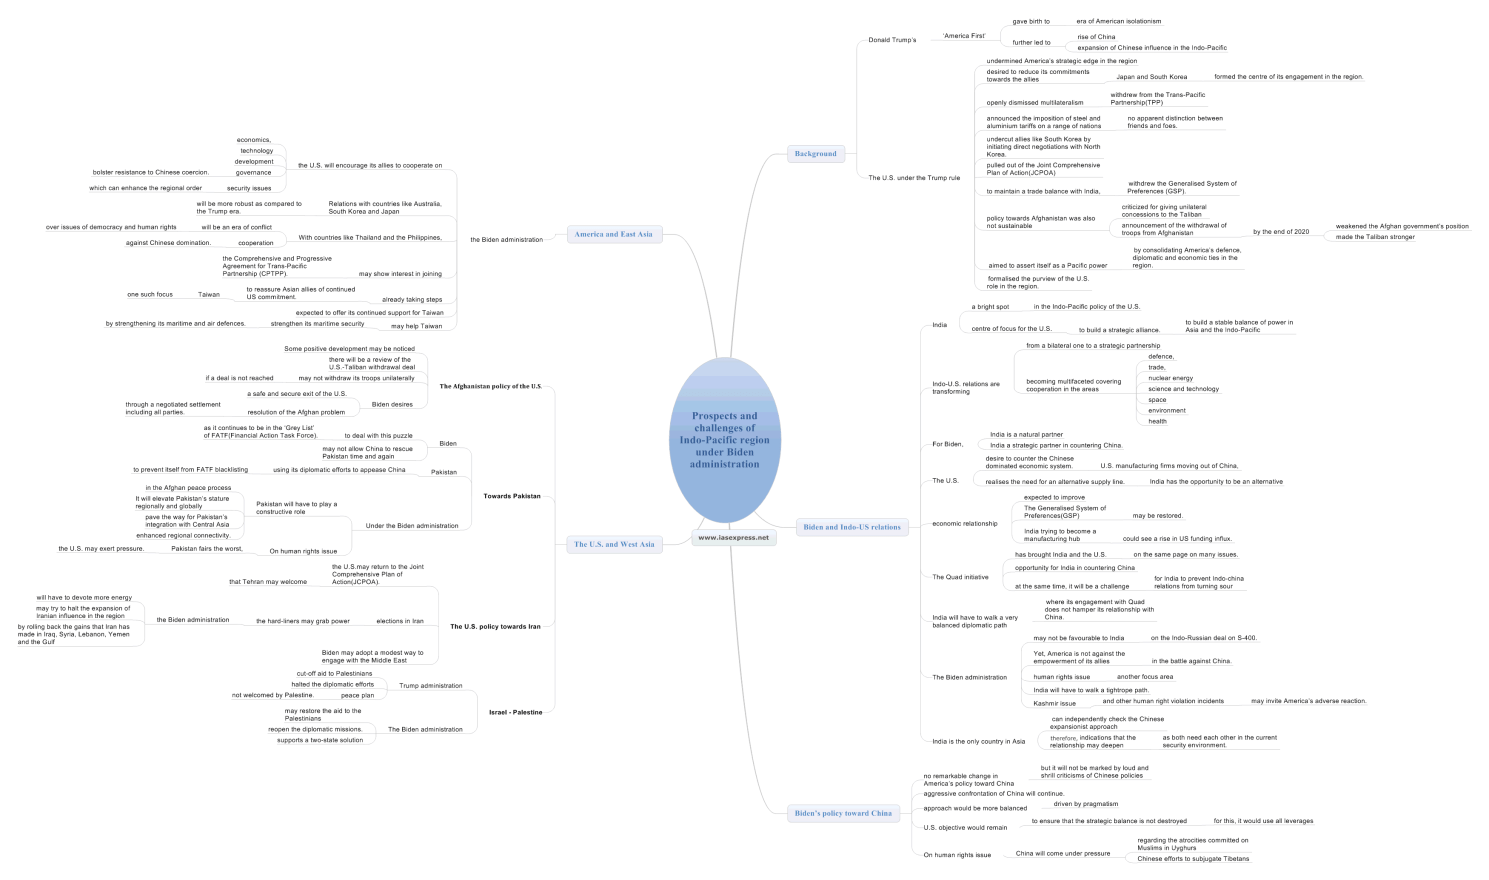 Prospects and challenges of Indo-Pacific region under Biden administration mindmap